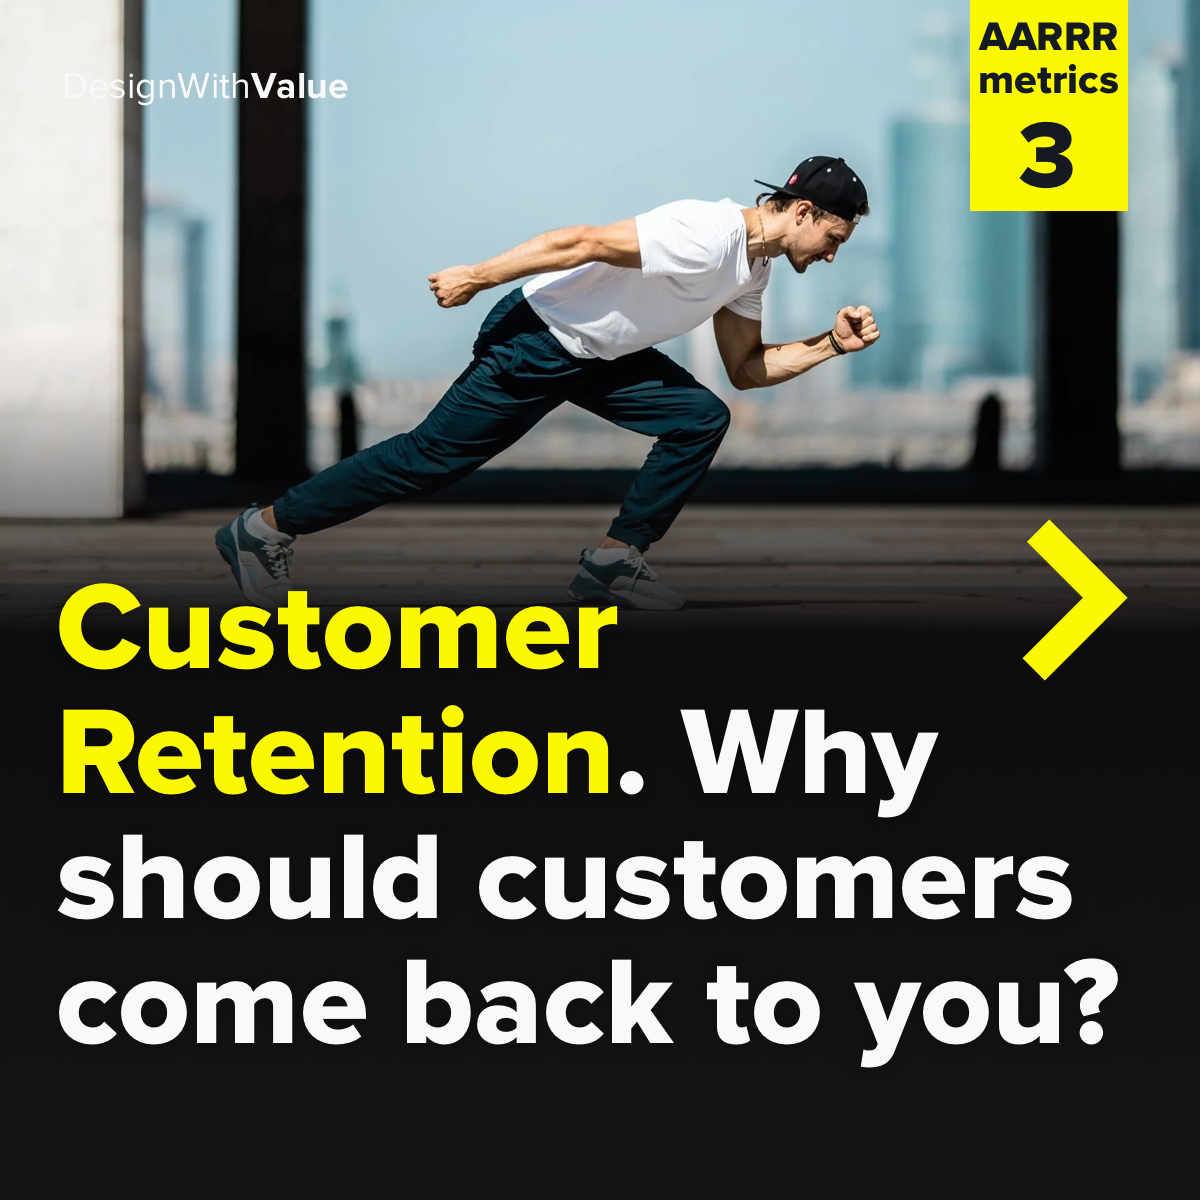 Customer retention. Why should customers come back to you?